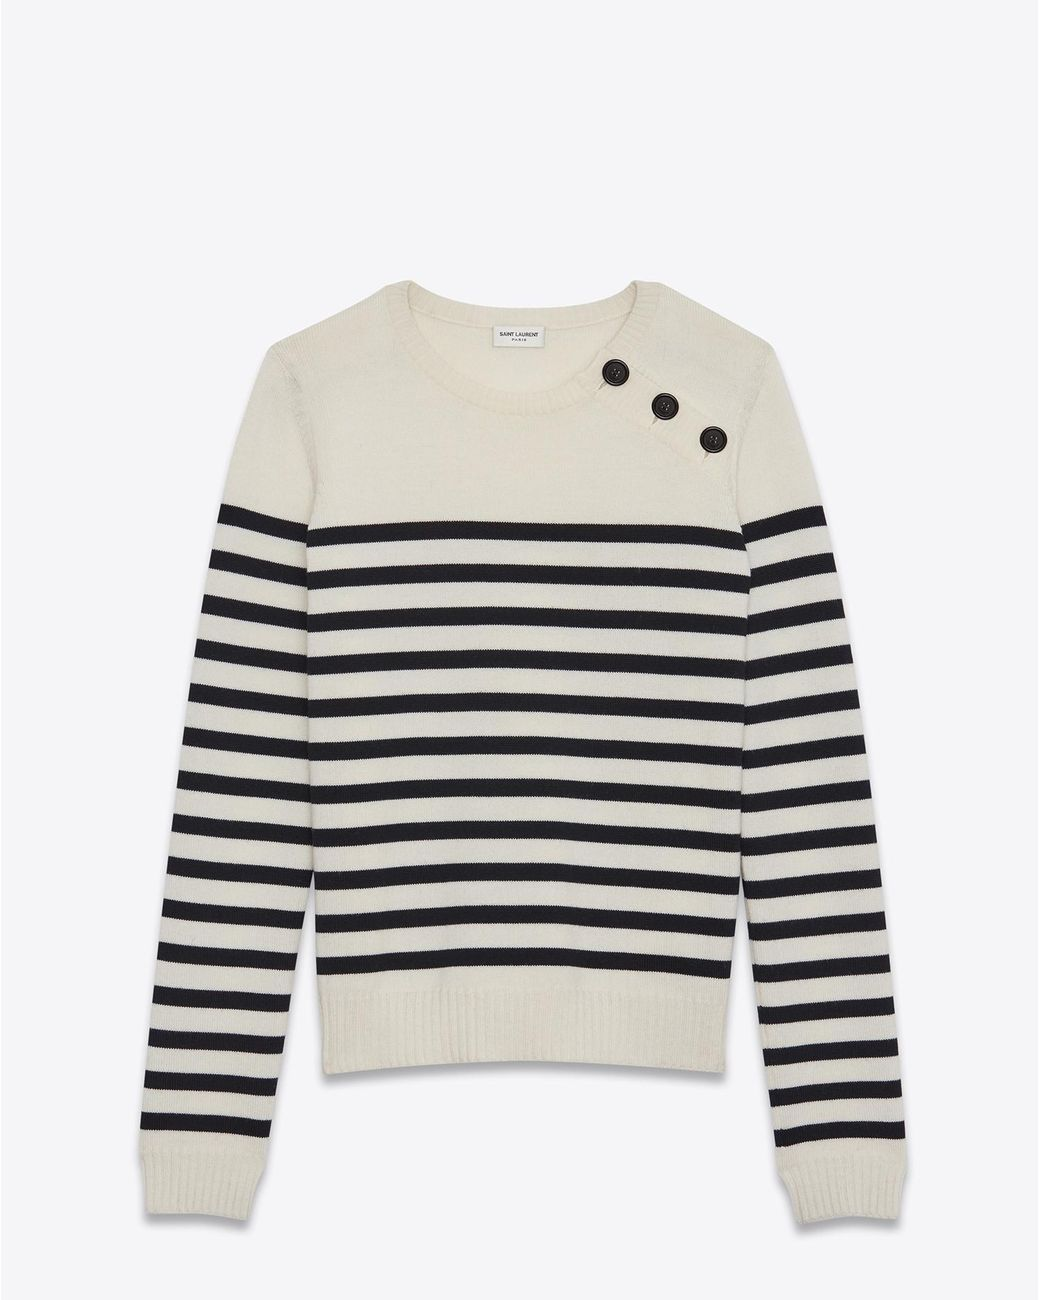 fee73426803 Women s White Mariniére Sweater In Ivory And Black Striped Wool ...